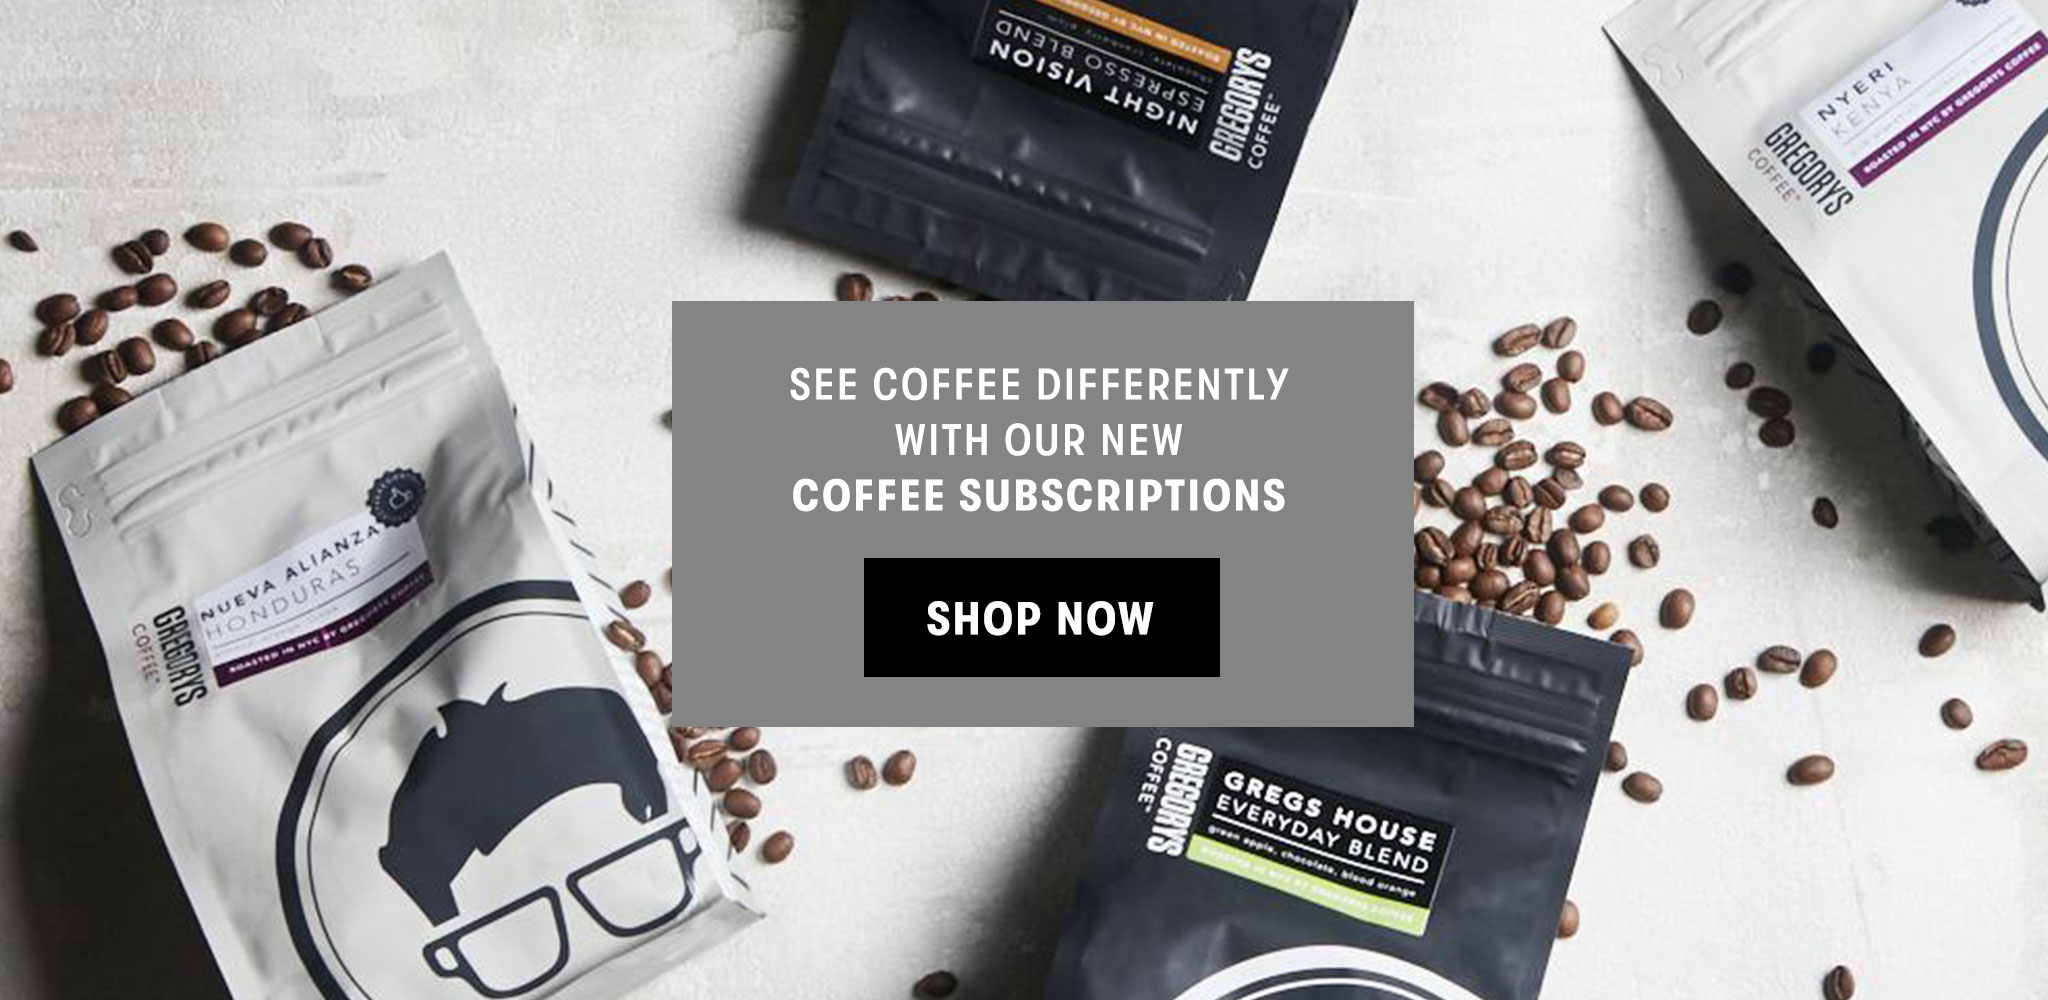 See Coffee Differently at home with our new Coffee Subscriptions